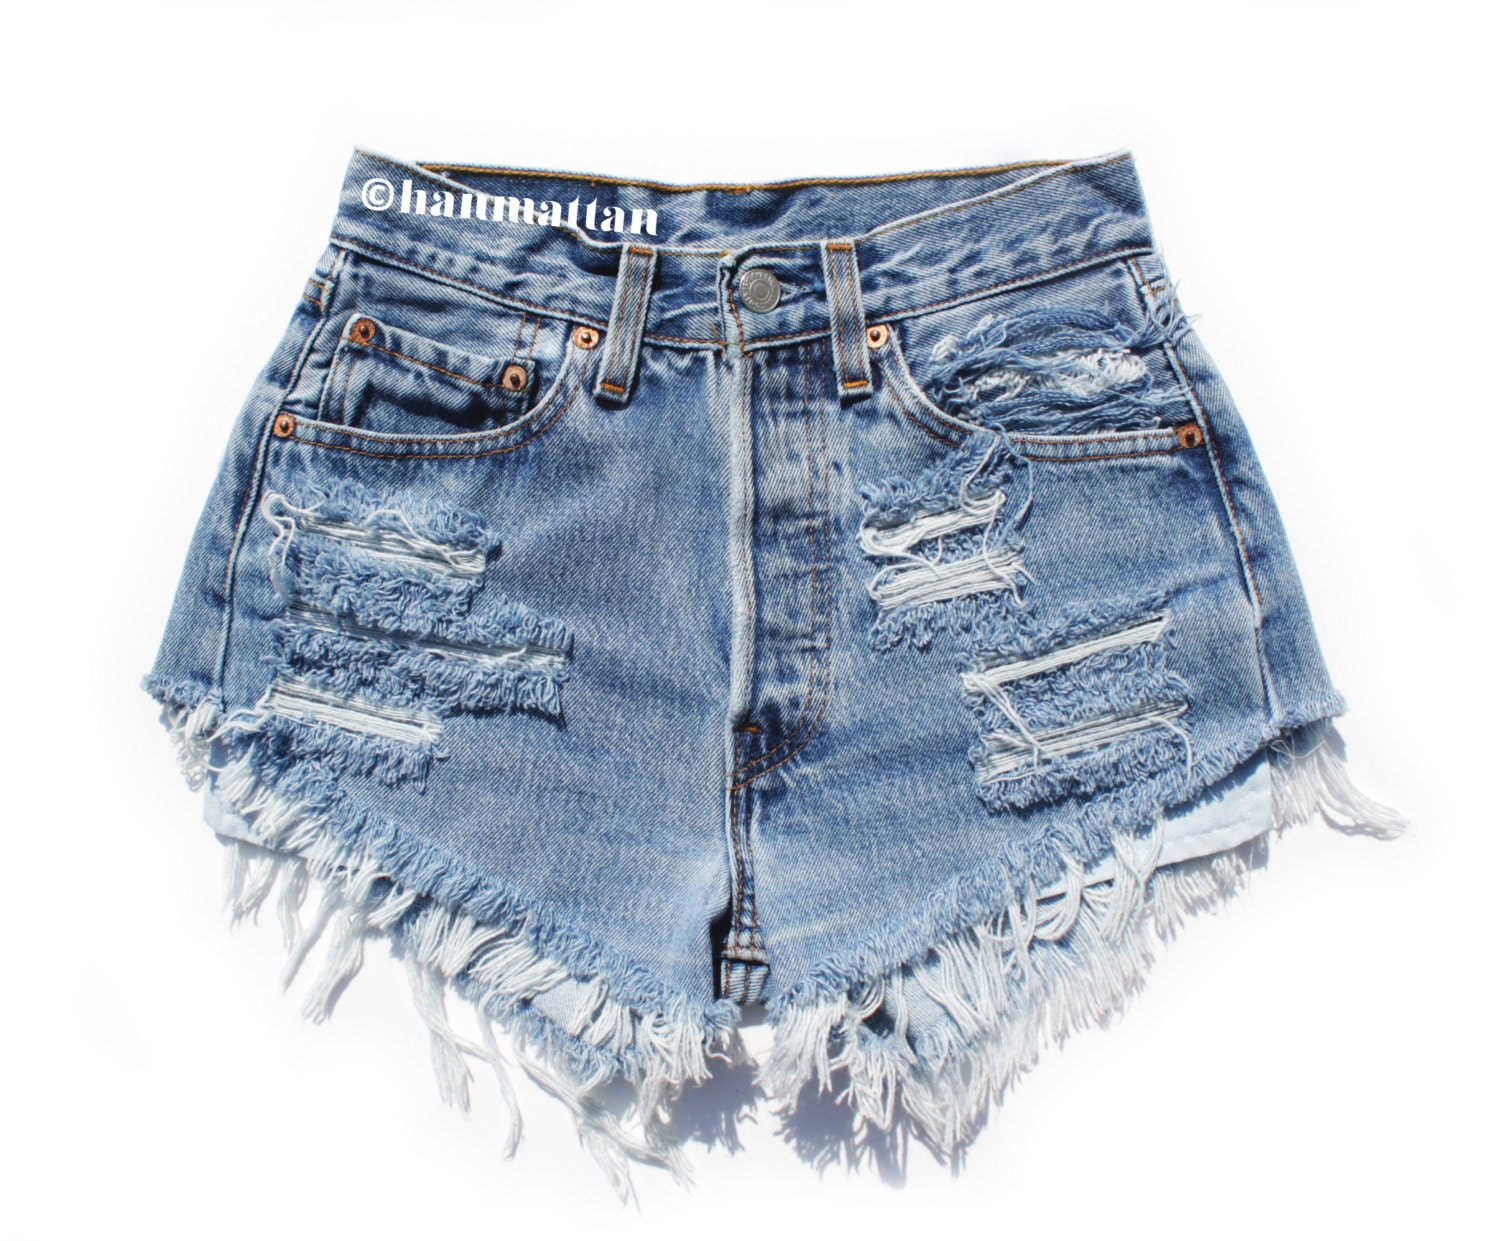 Distress Jean Shorts - The Else